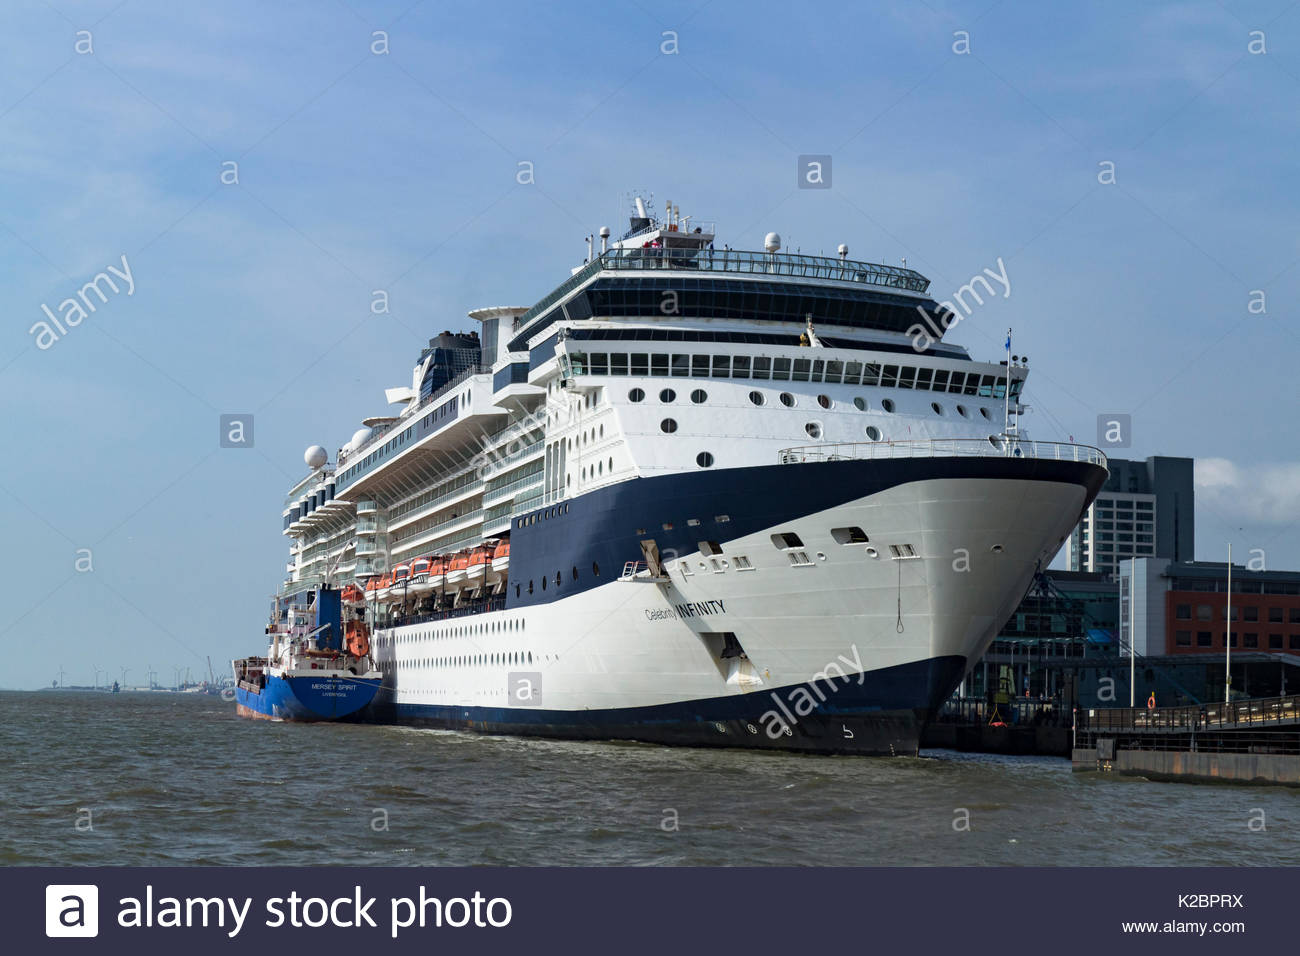 Cruise ship 'Celebrity Infinity' docked at Liverpool cruise liner terminal, with tanker 'Mersey Spirit' alongside, Merseyside, UK, June 2014. All non-editorial uses must be cleared individually. - Stock Image